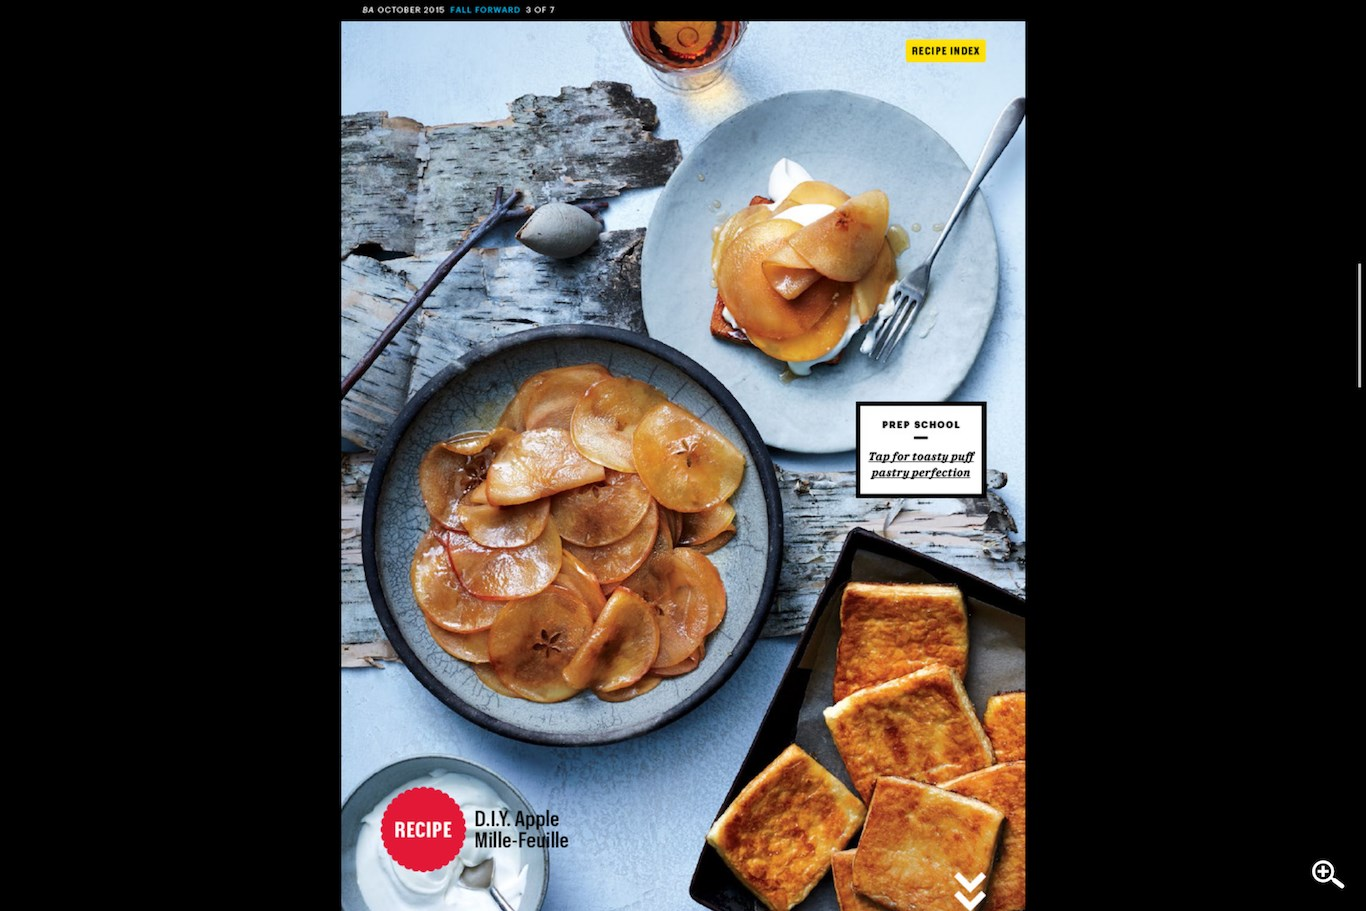 how to download texture magazines app